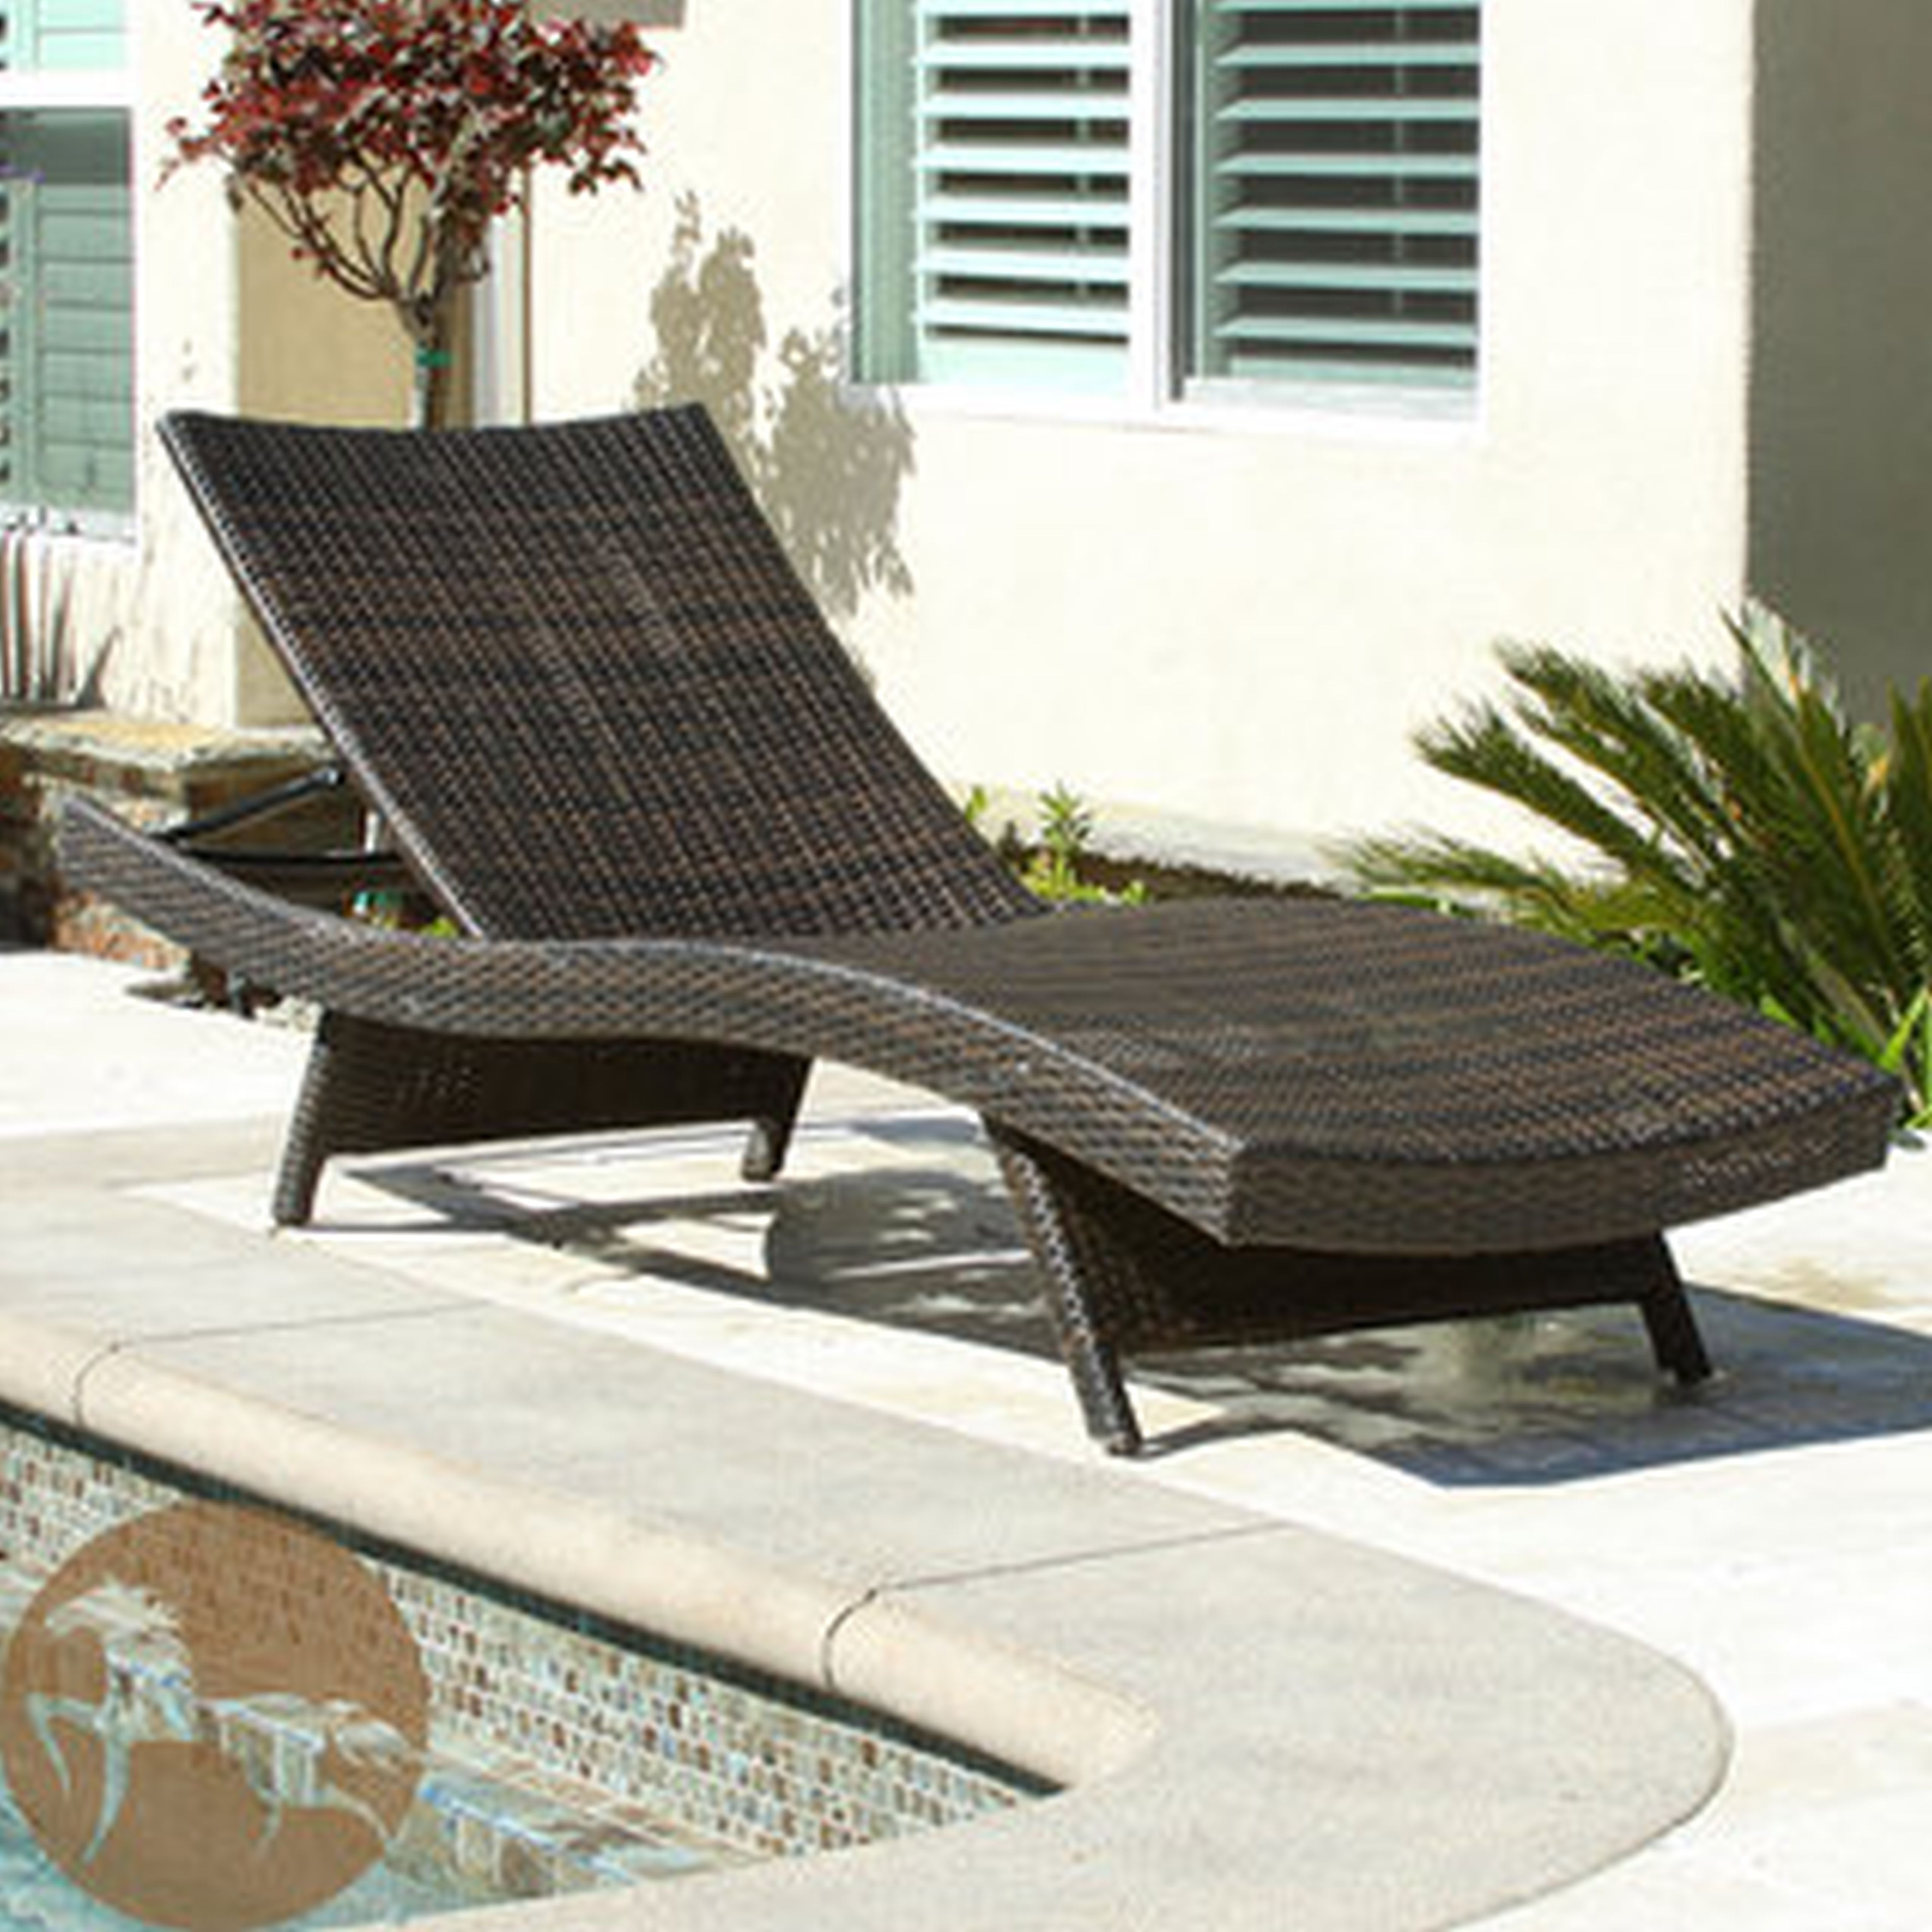 Preferred Lounge Chair : Gray Wicker Chaise Lounge Lounge Chairs For Bedroom Within Grey Wicker Chaise Lounge Chairs (View 6 of 15)